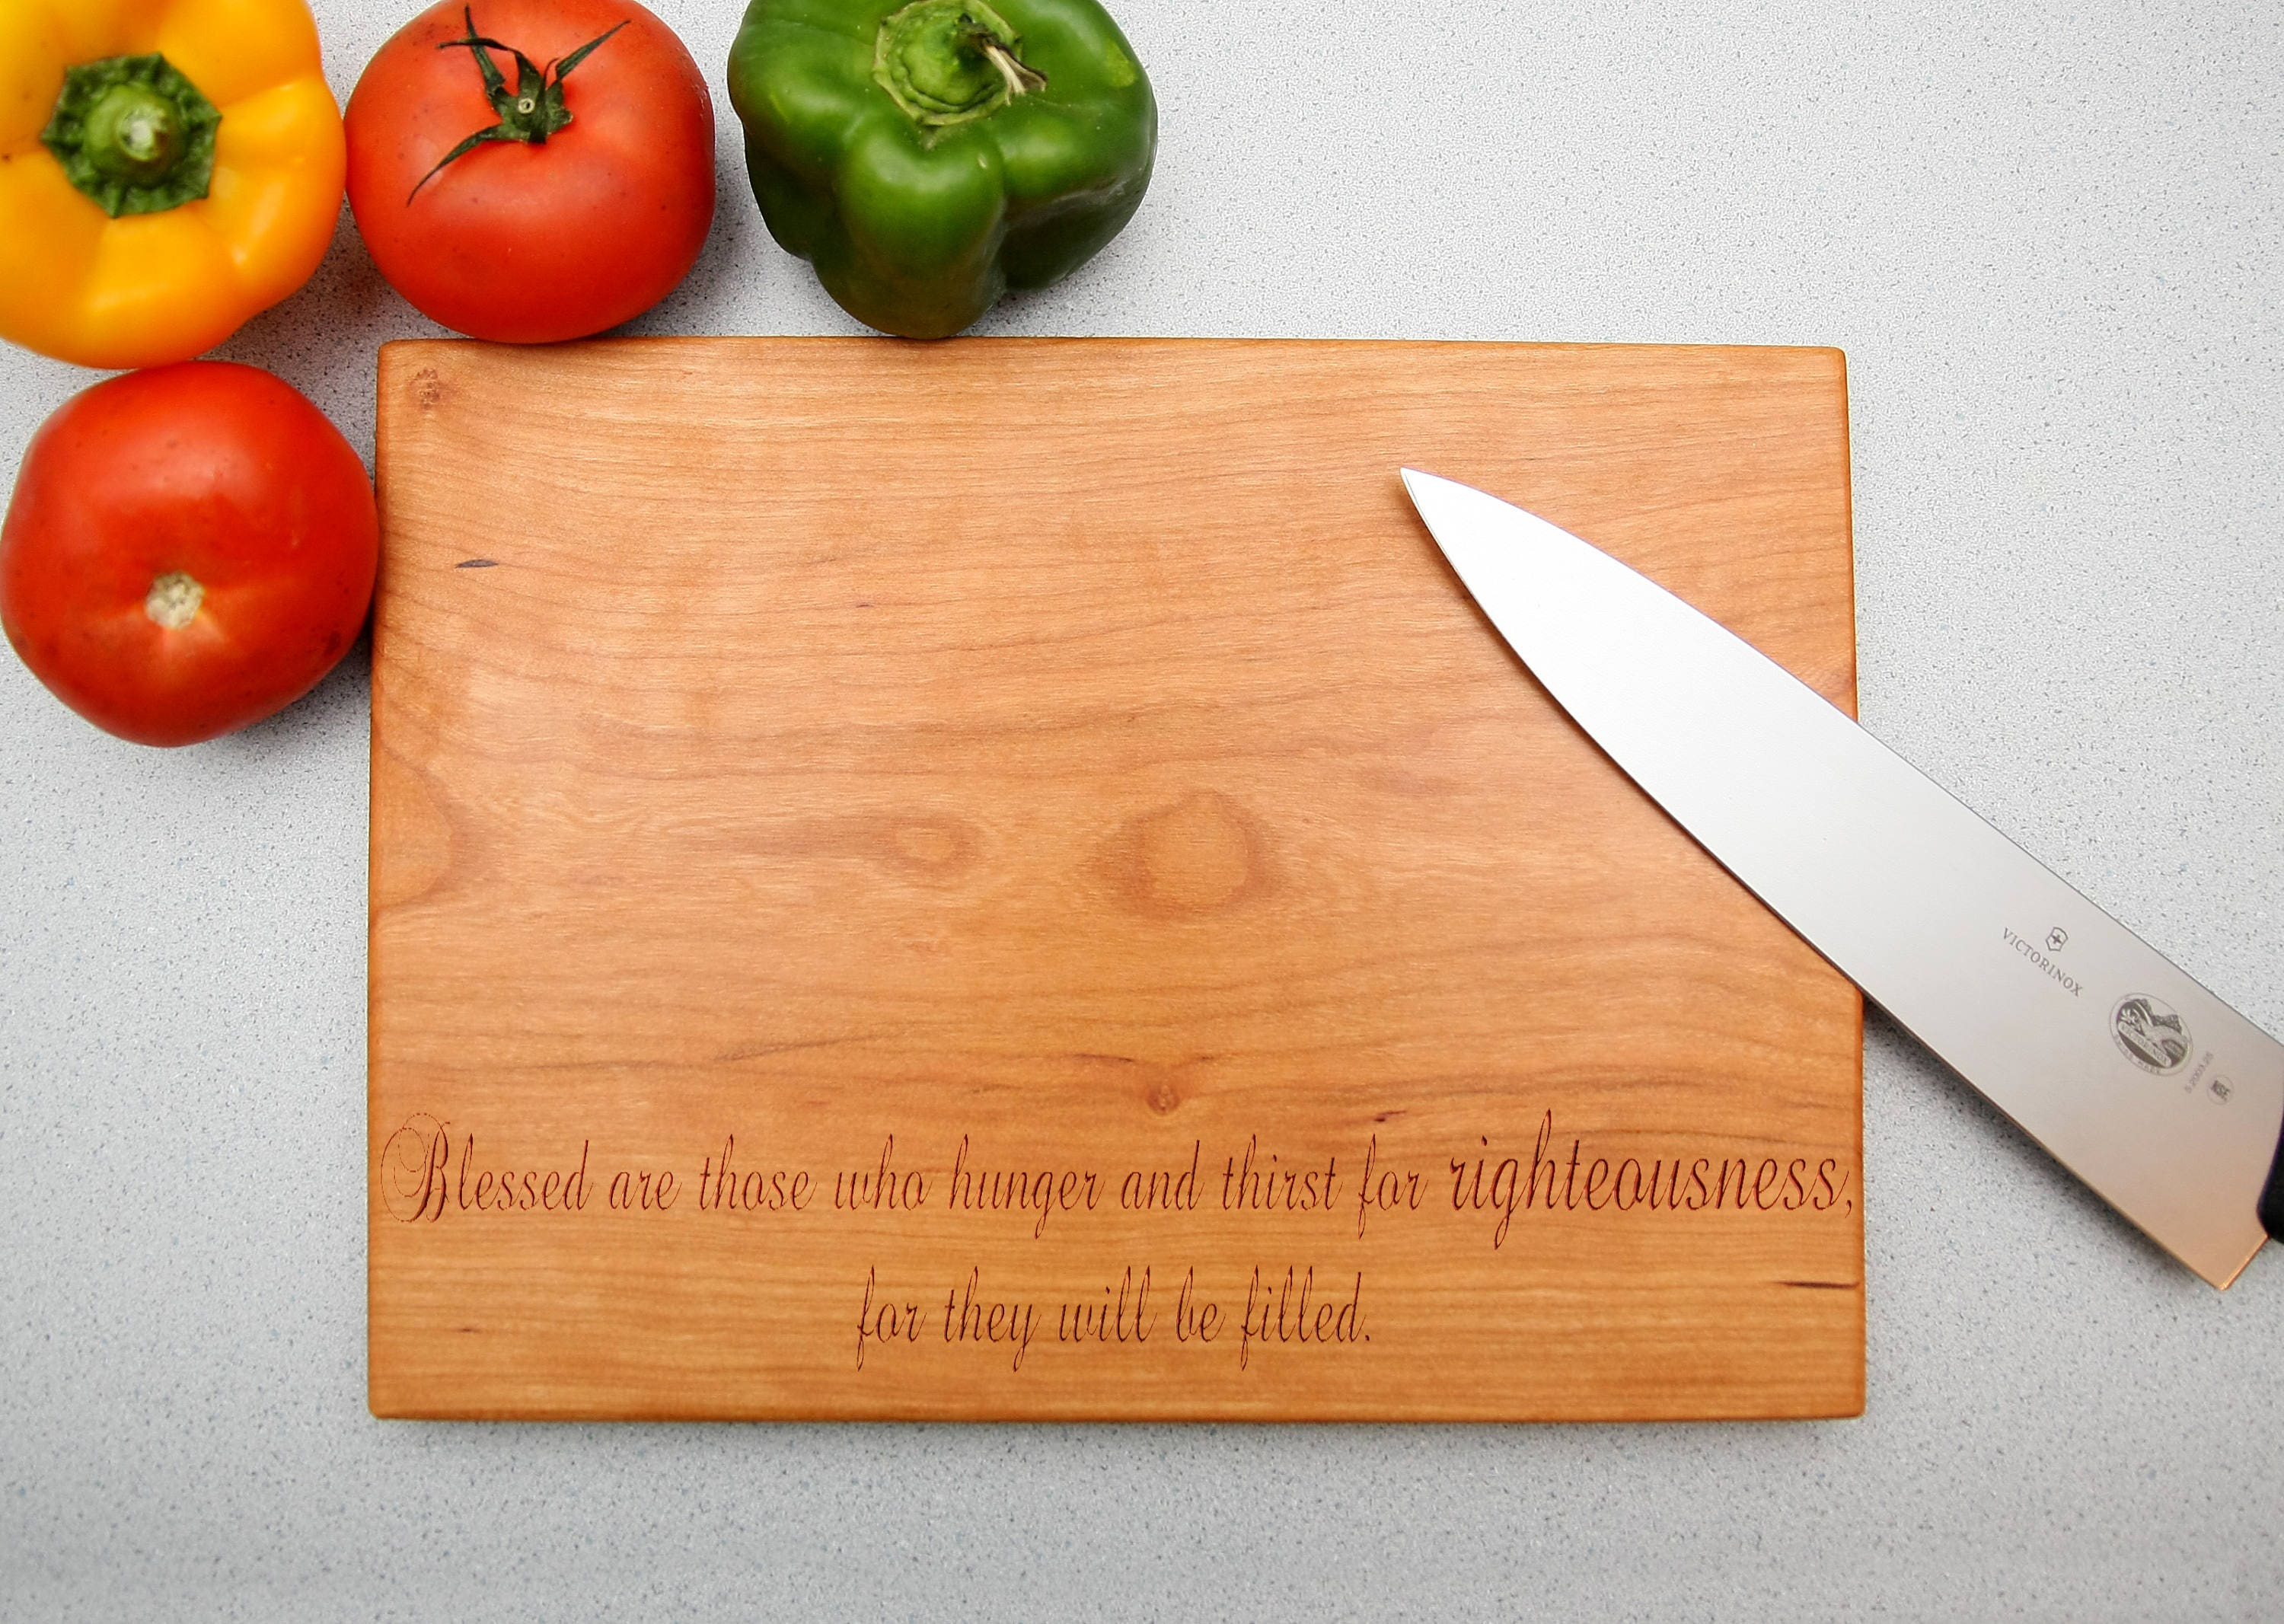 Matthew 5 6 Righteousness Cutting Board Gift for Christmas